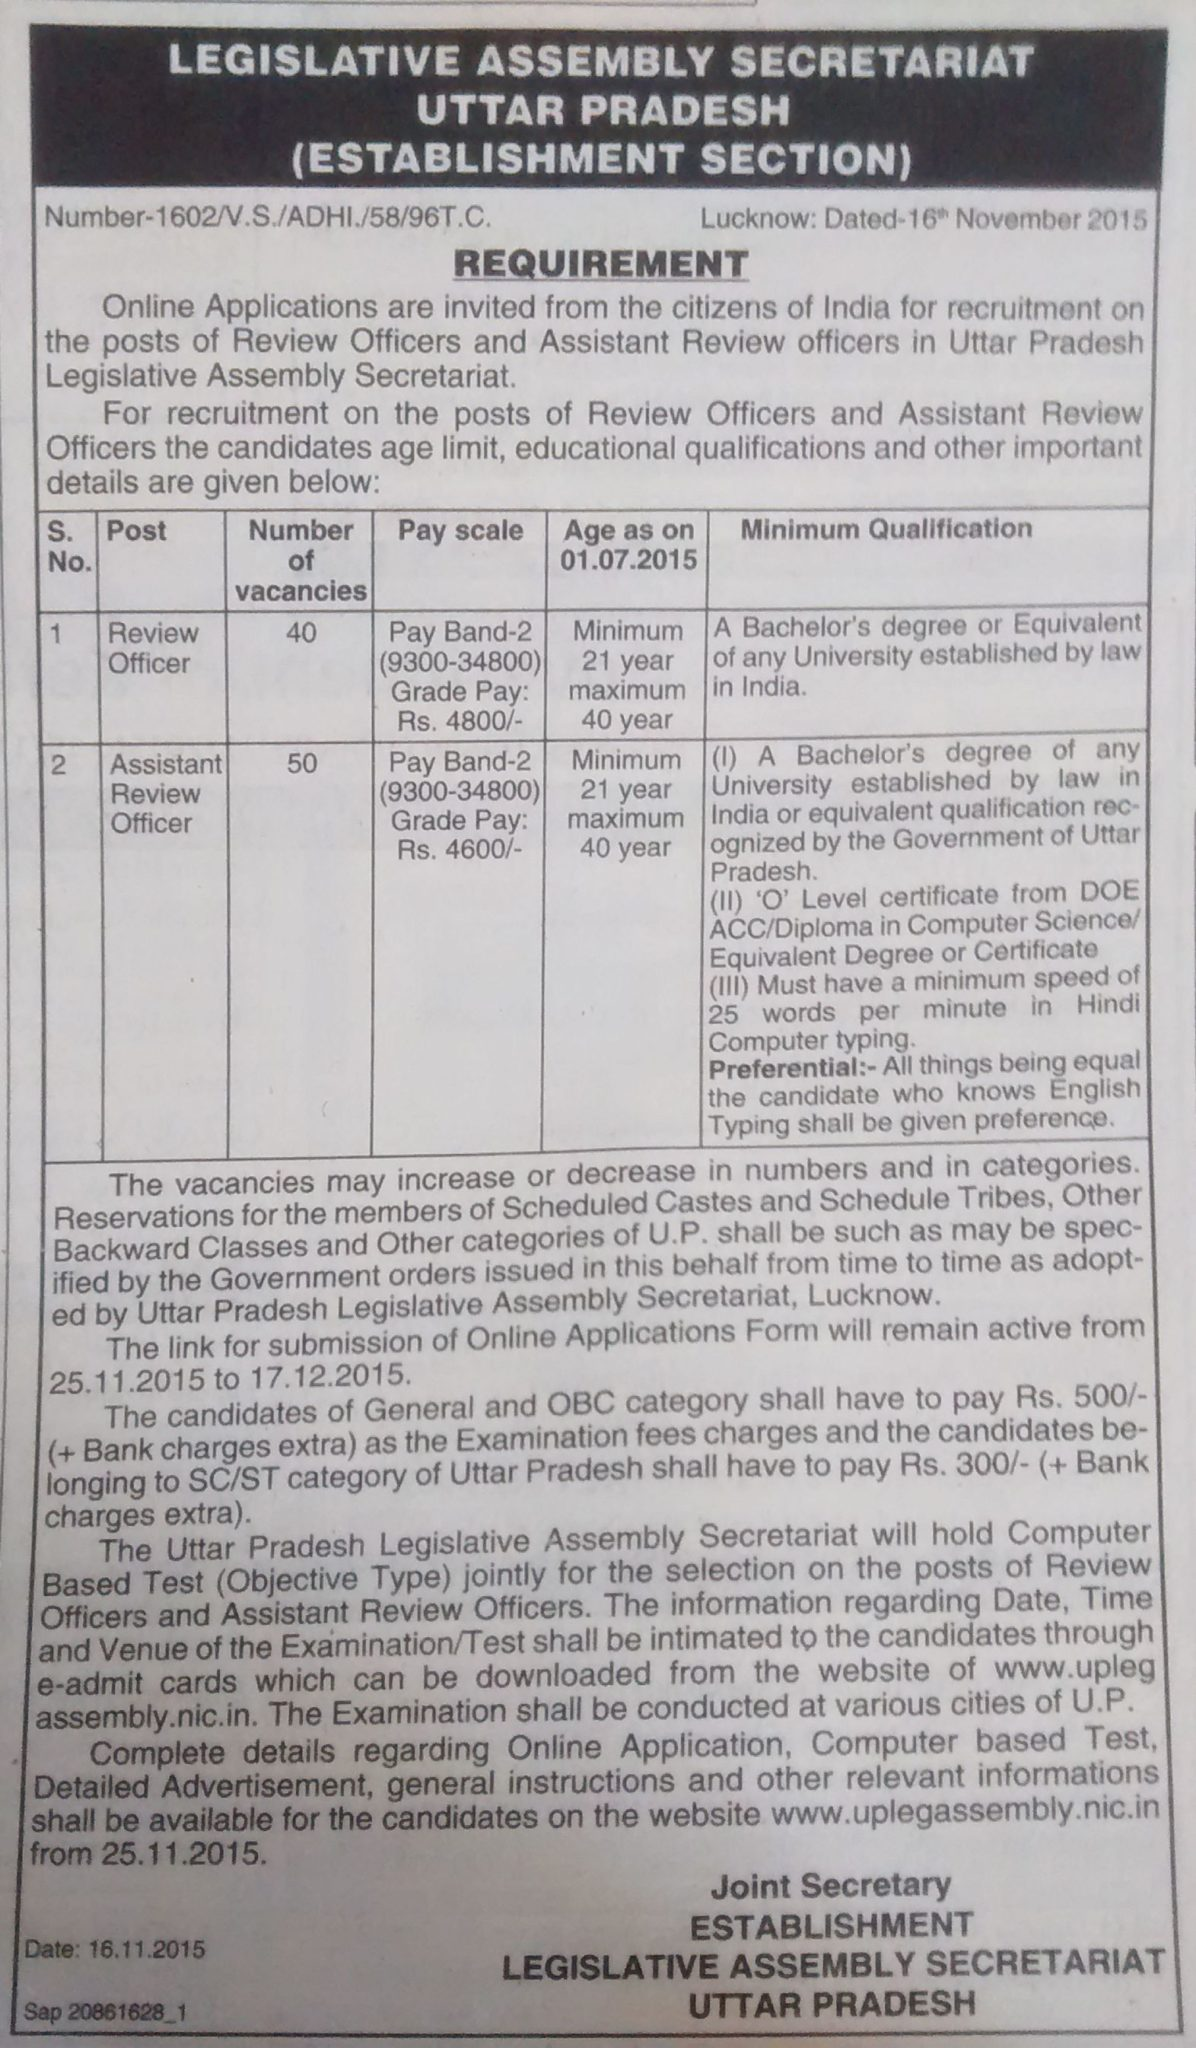 UP Legislative Assembly Secretariat Recruitment 2015 for 90 RO and ARO Posts